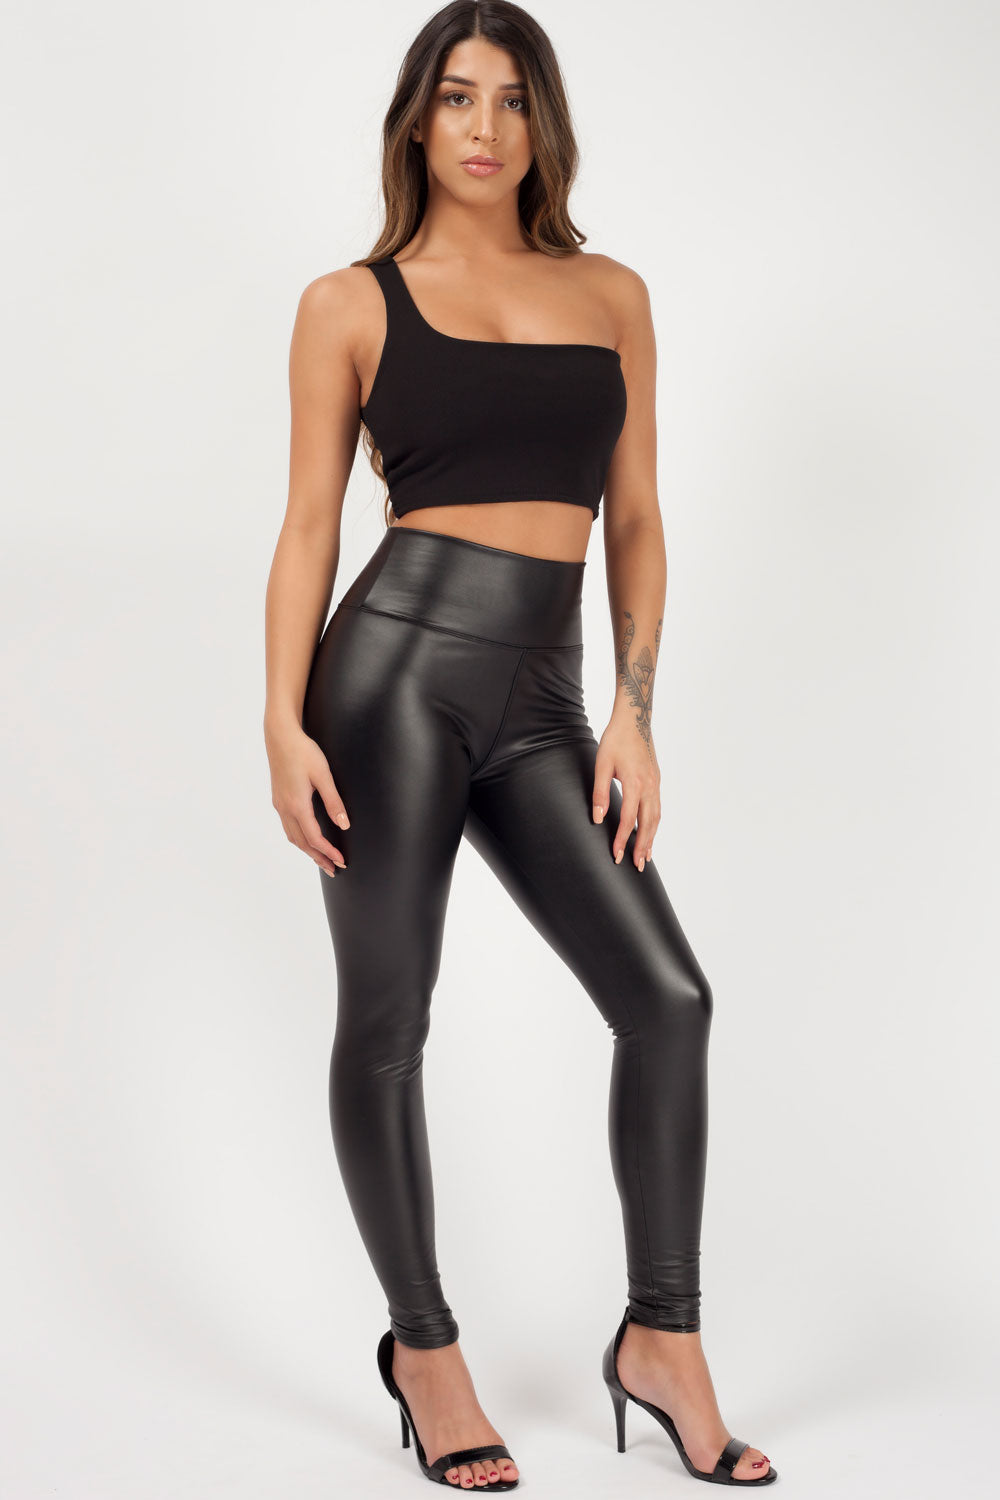 black wet look leggings styledup fashion